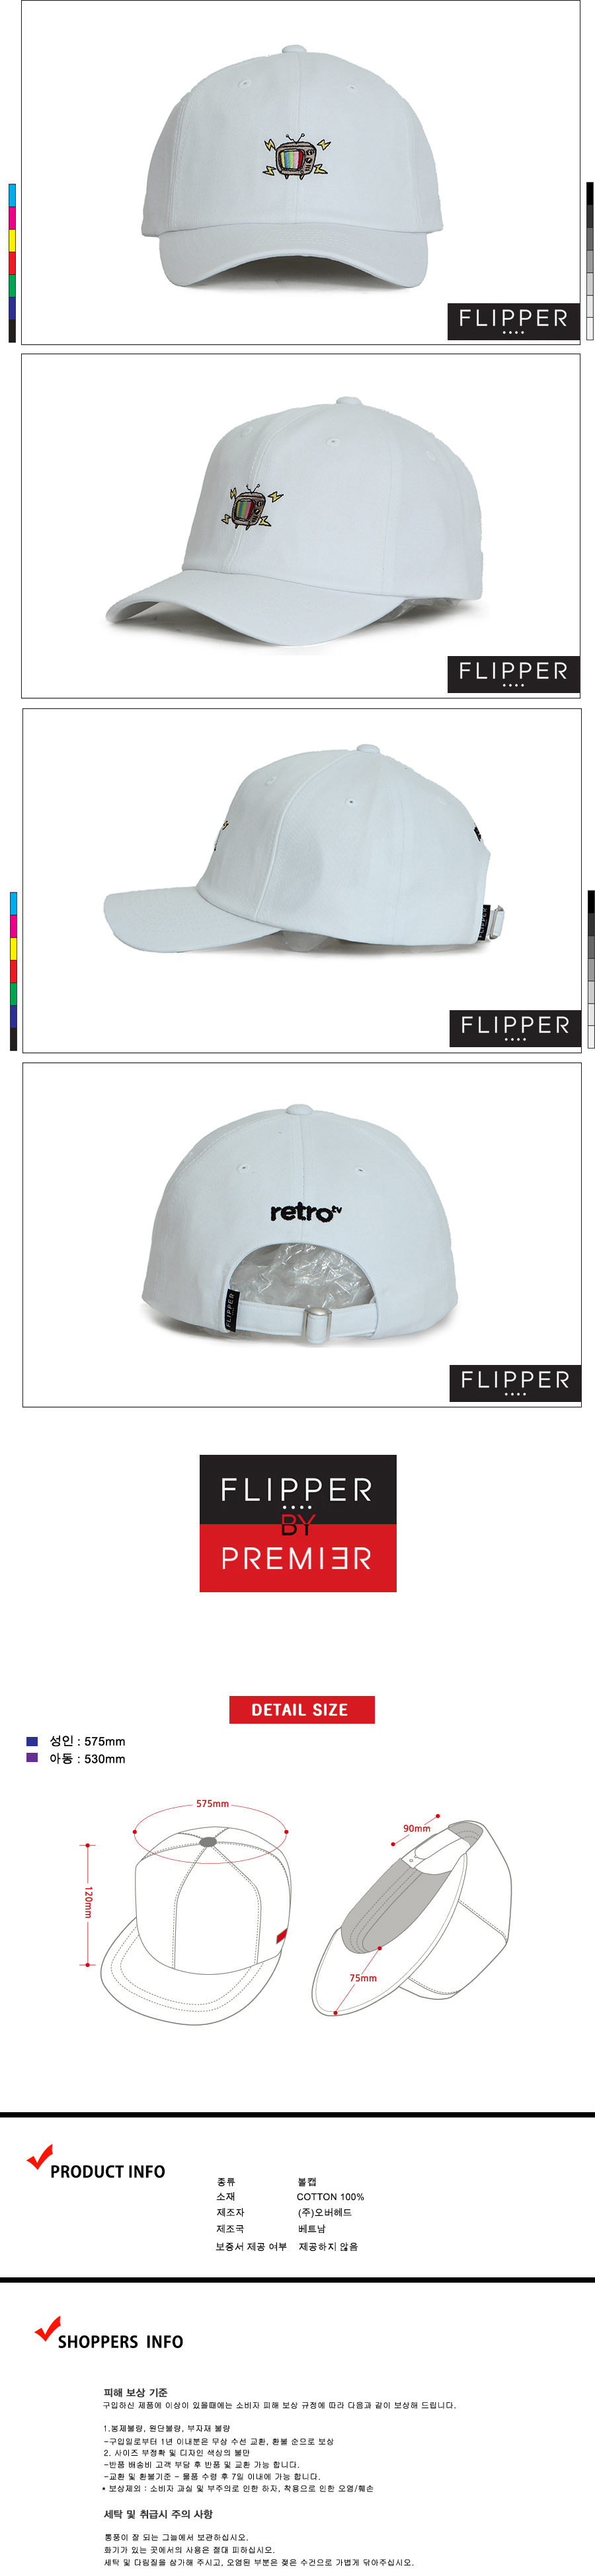 [ PREMIER ] [Premier] Flipper Ball Cap Retro TV White (FL088)